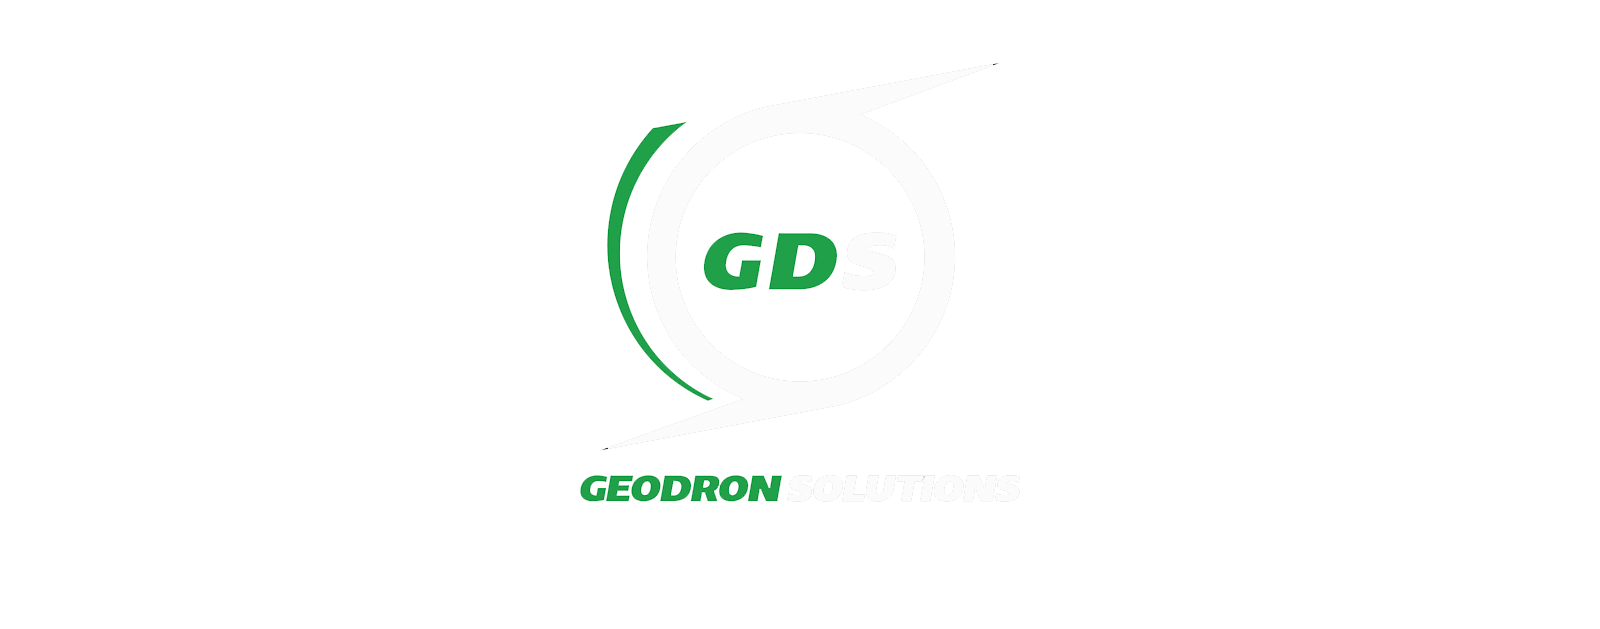 elevator pitch geodron solutions world quondos record startup day